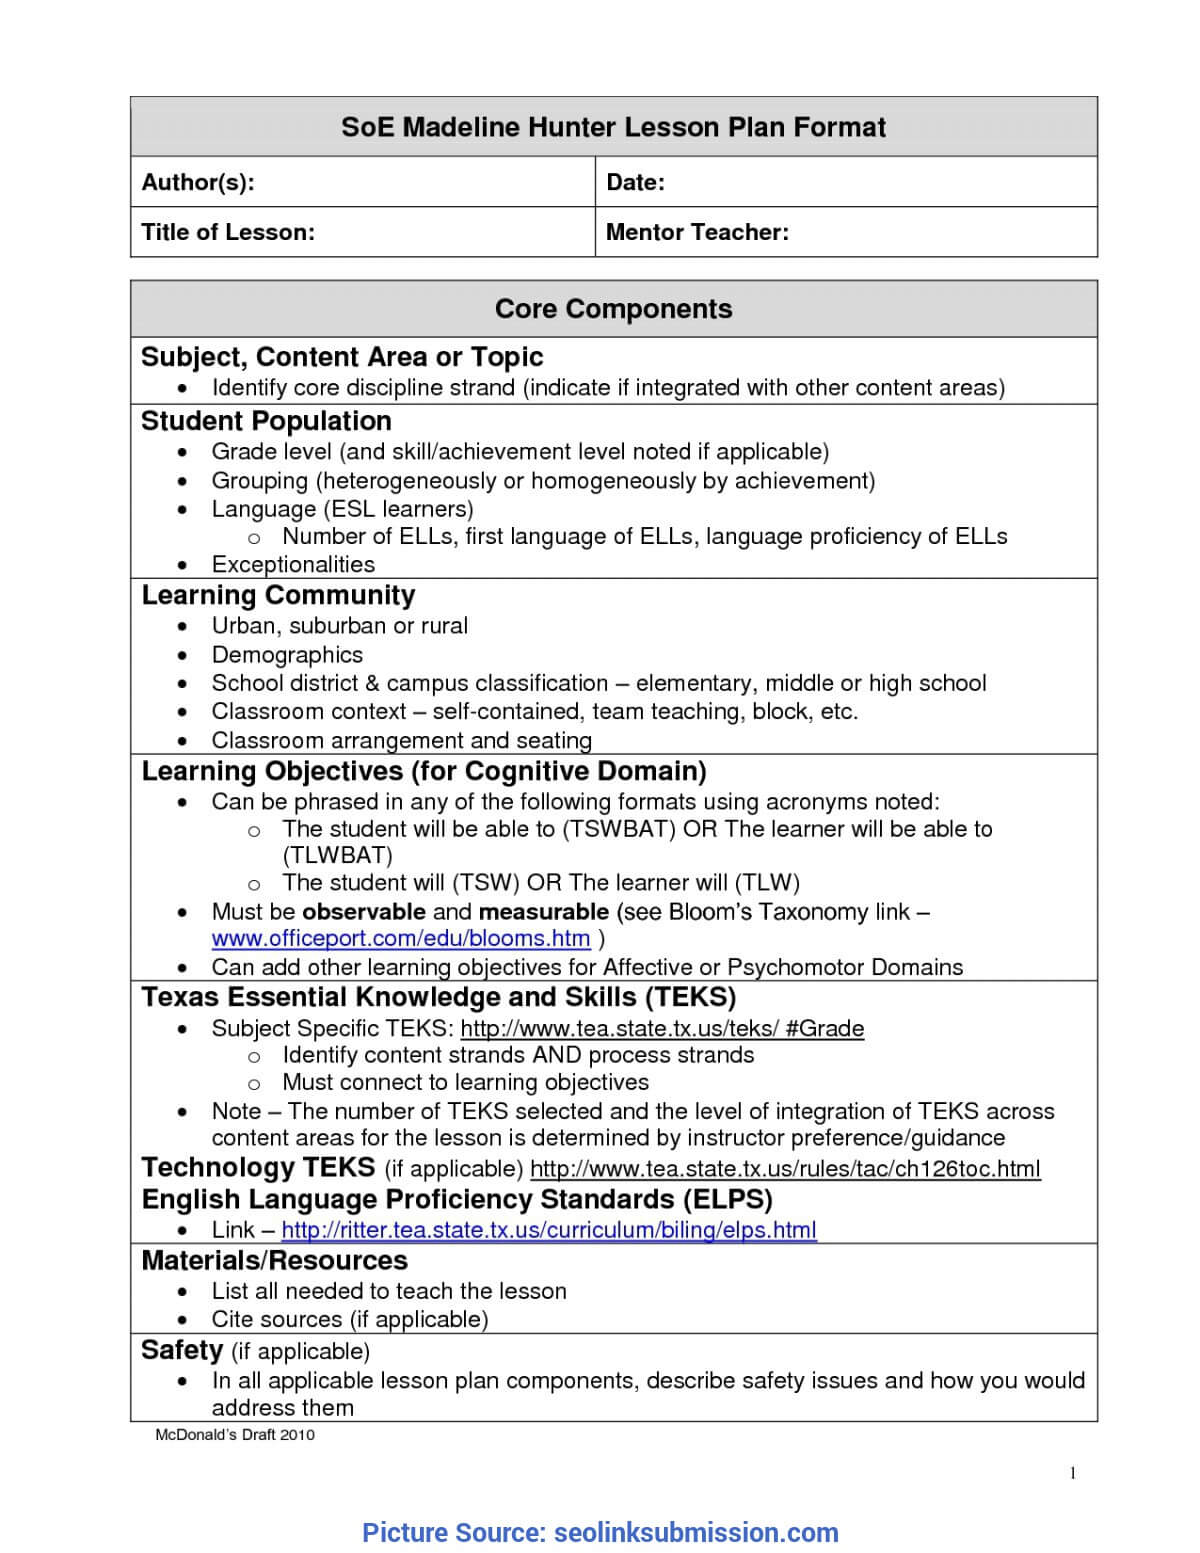 Unusual A Modern Version Of Madeline Hunter Lesson Plan In Madeline Hunter Lesson Plan Template Word